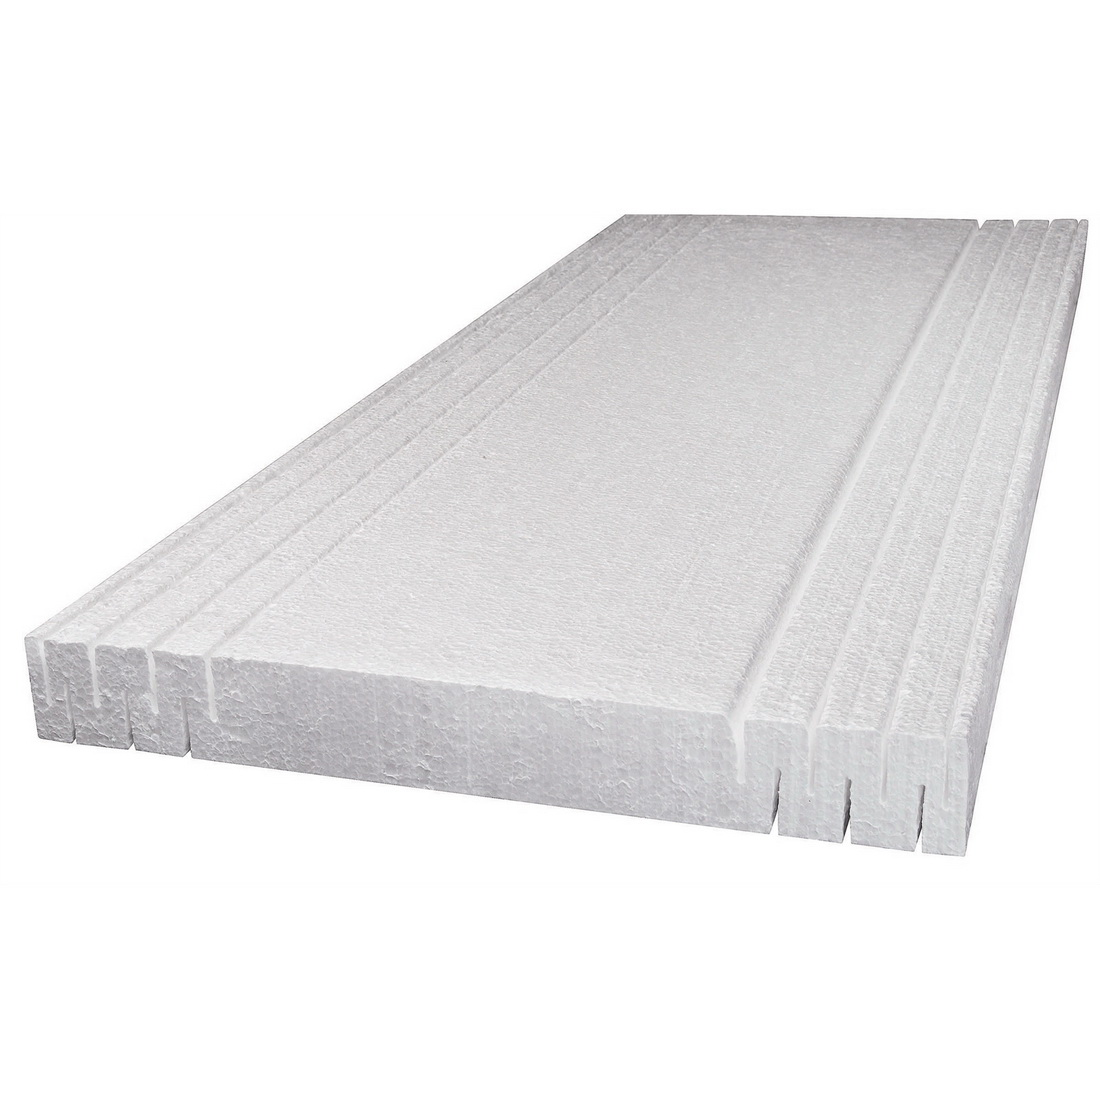 Expol Under Floor Insulation 1200 x 410 x 60 mm White E60410